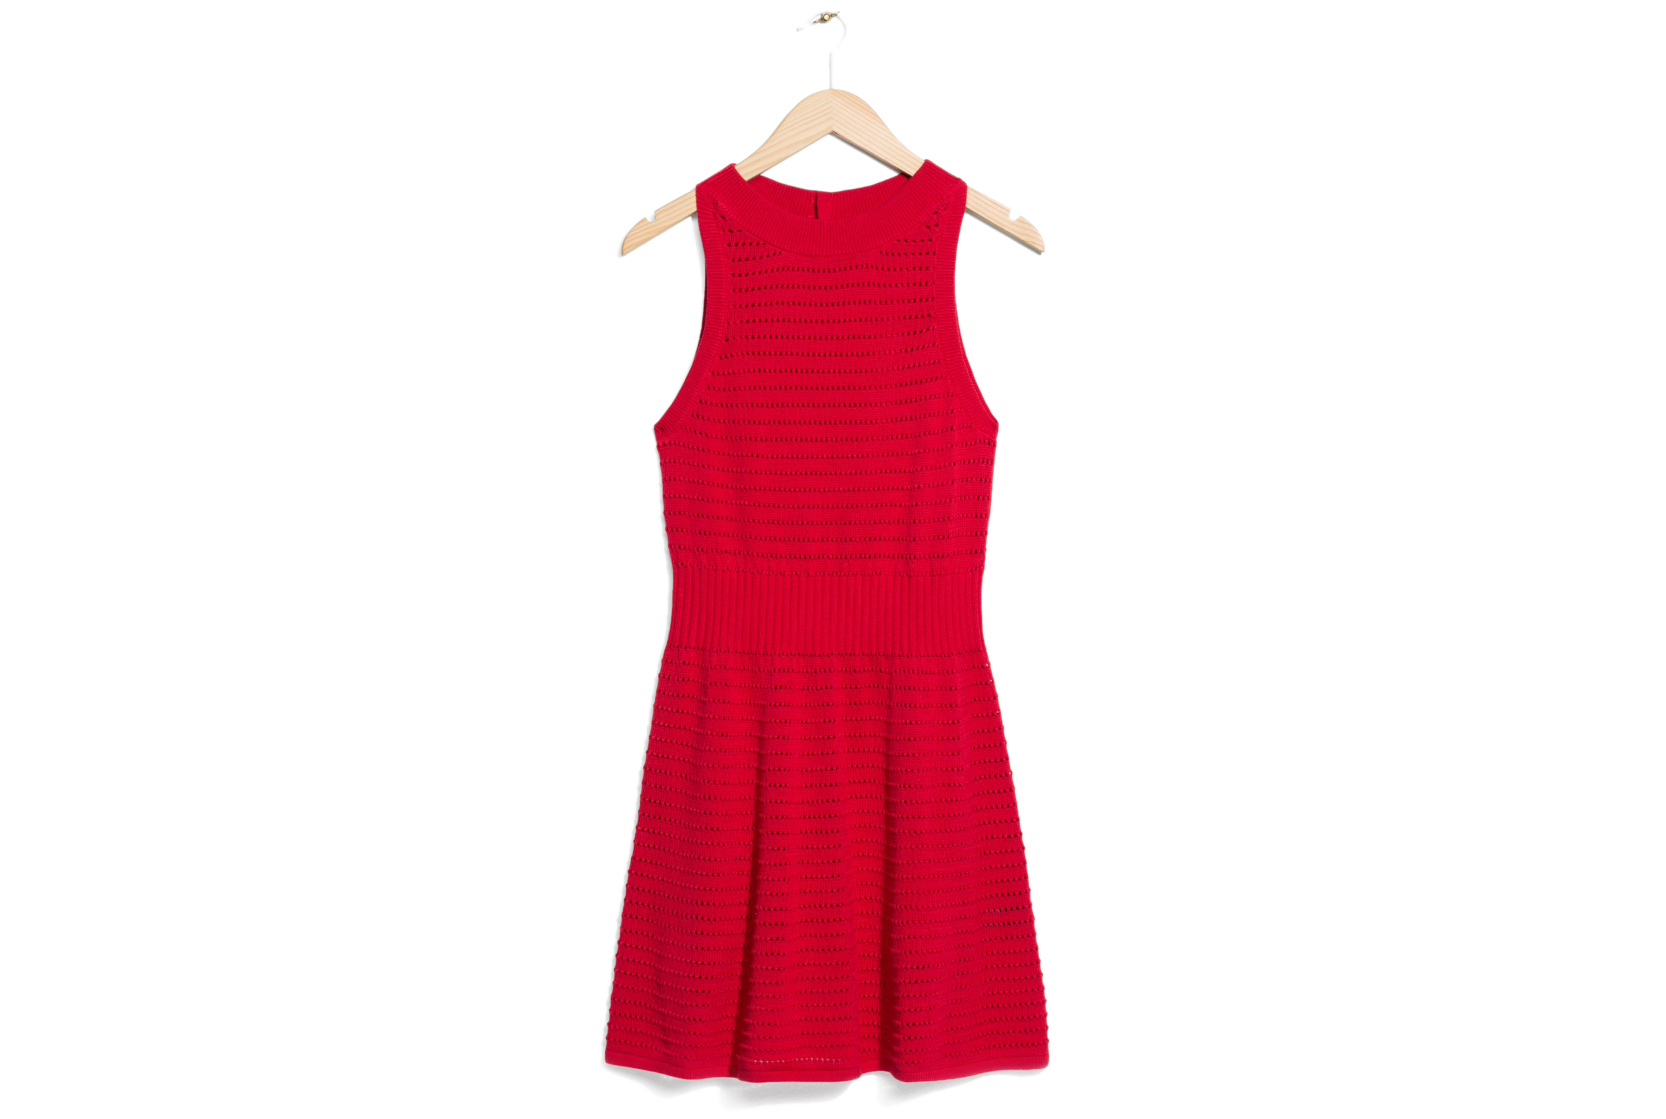 & Other Stories Pointelle Knit Dress in red